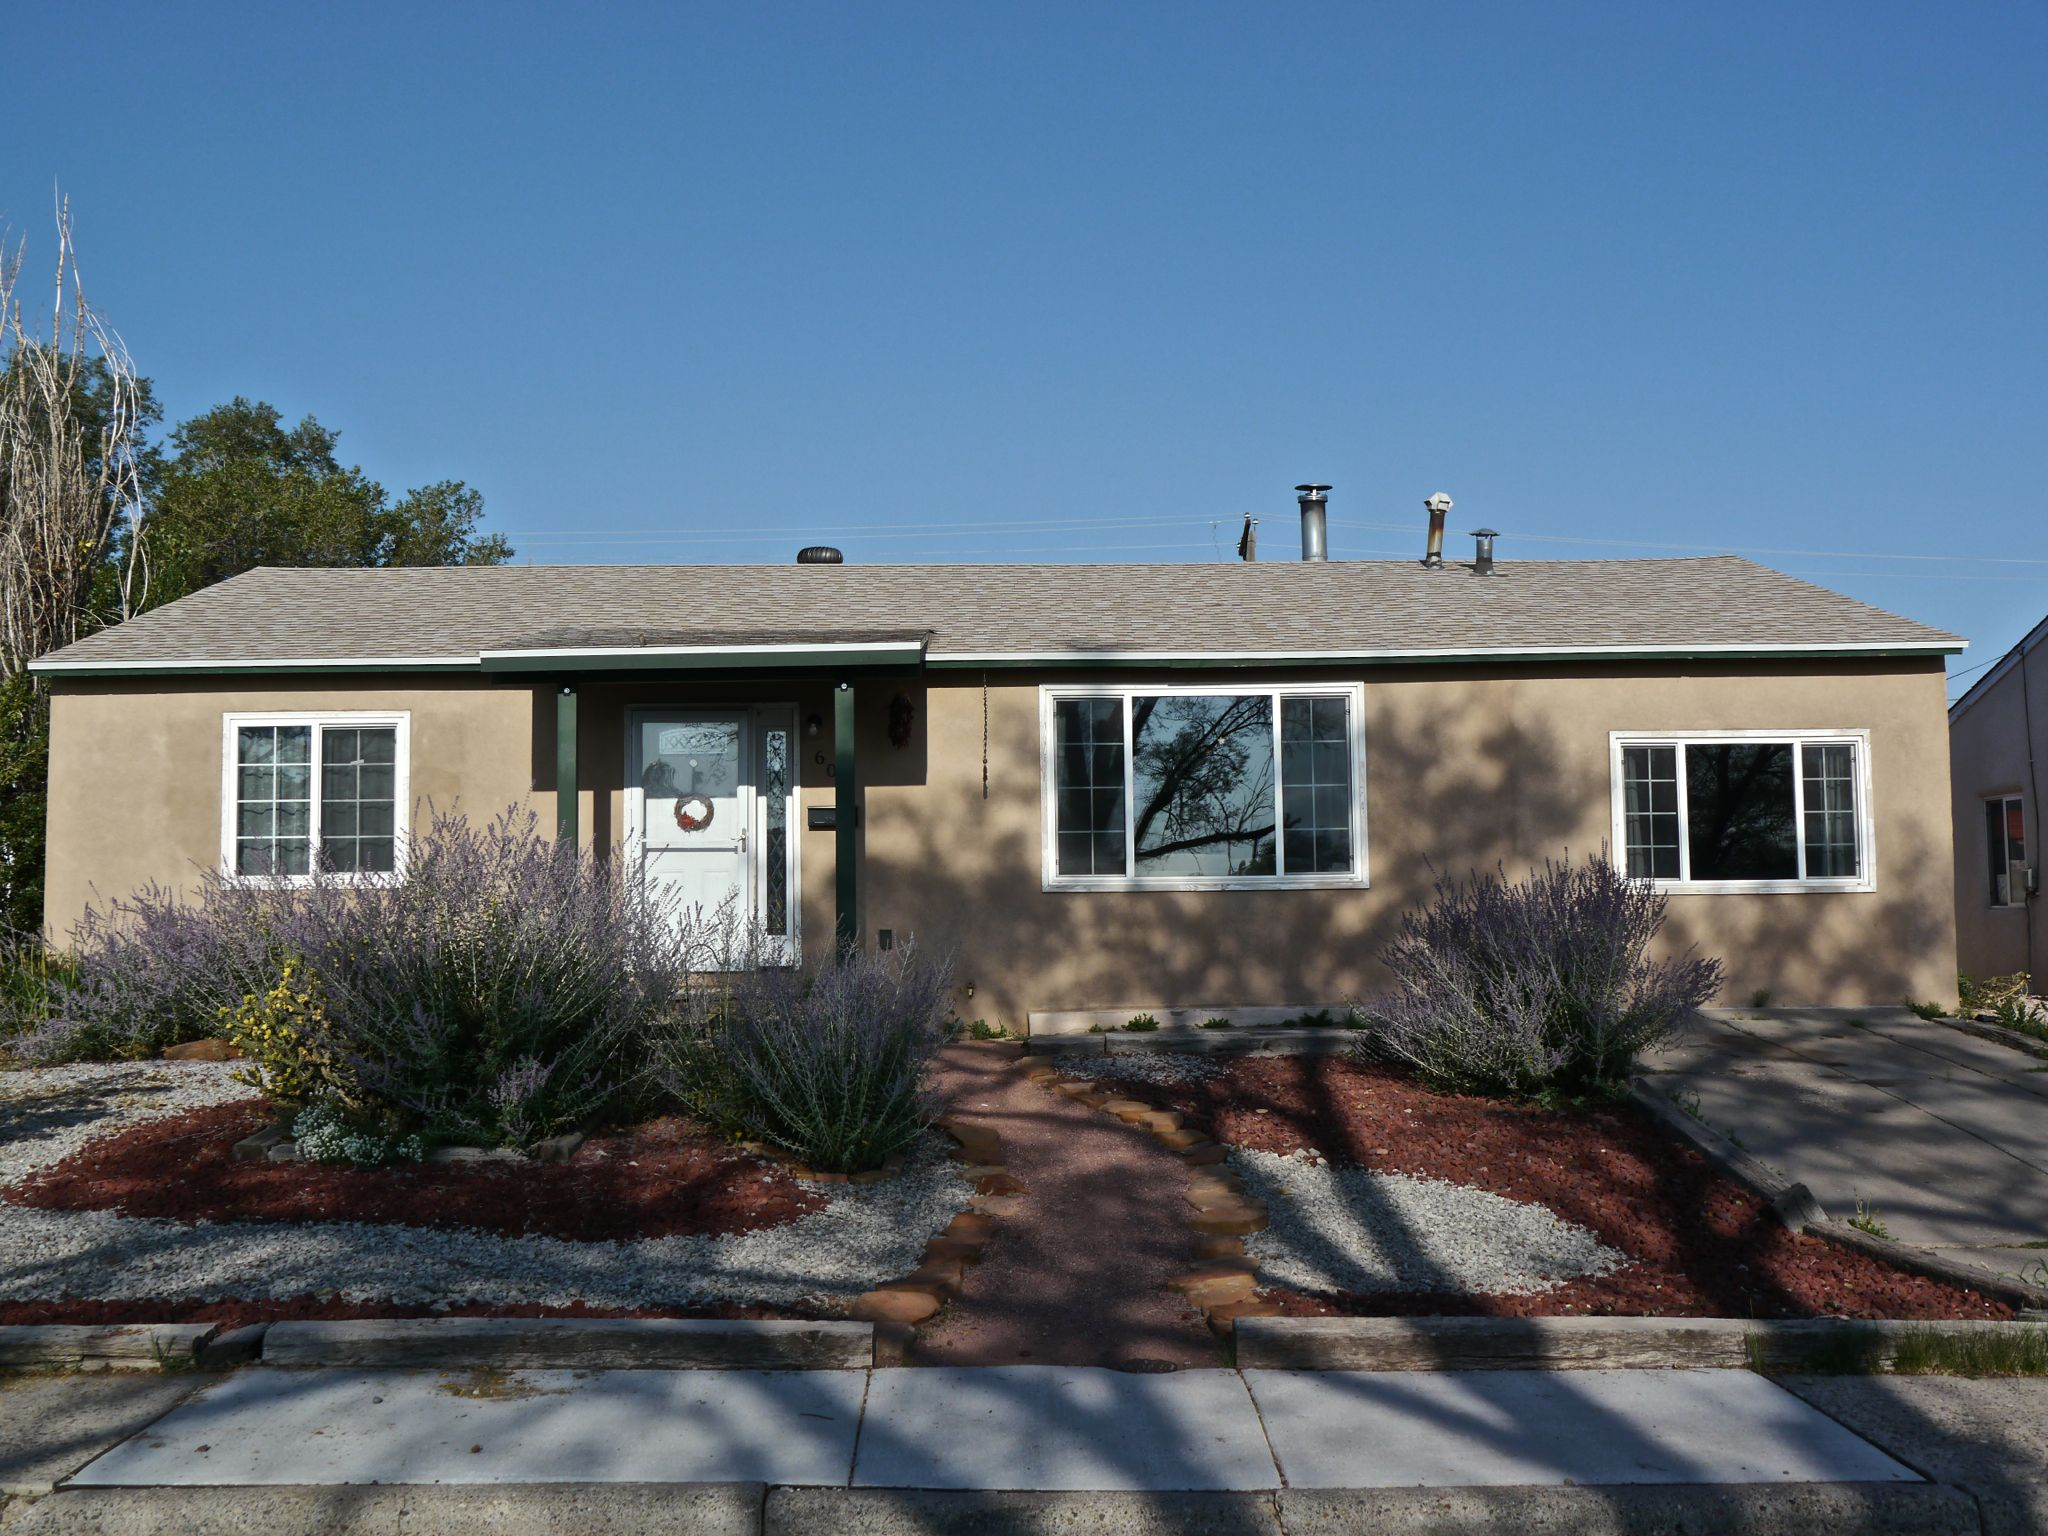 604 Sunset Dr, Gallup, NM - 3 Bed, 2 Bath Single-Family